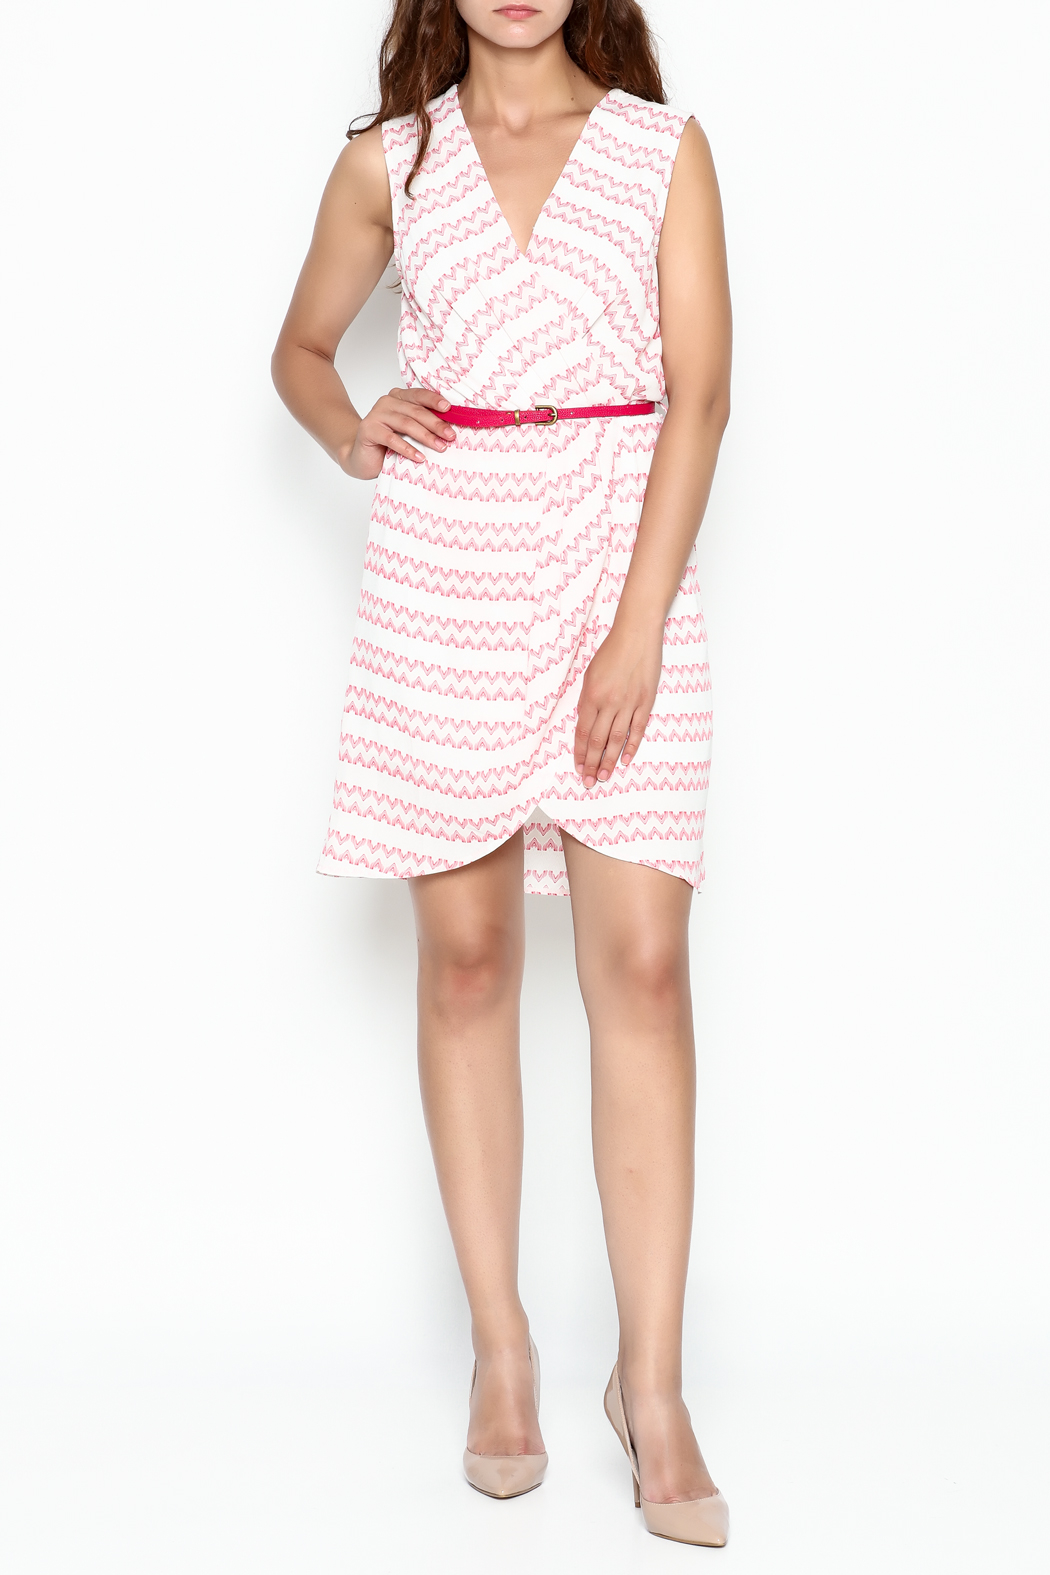 Skies Are Blue White And Pink Dress - Side Cropped Image